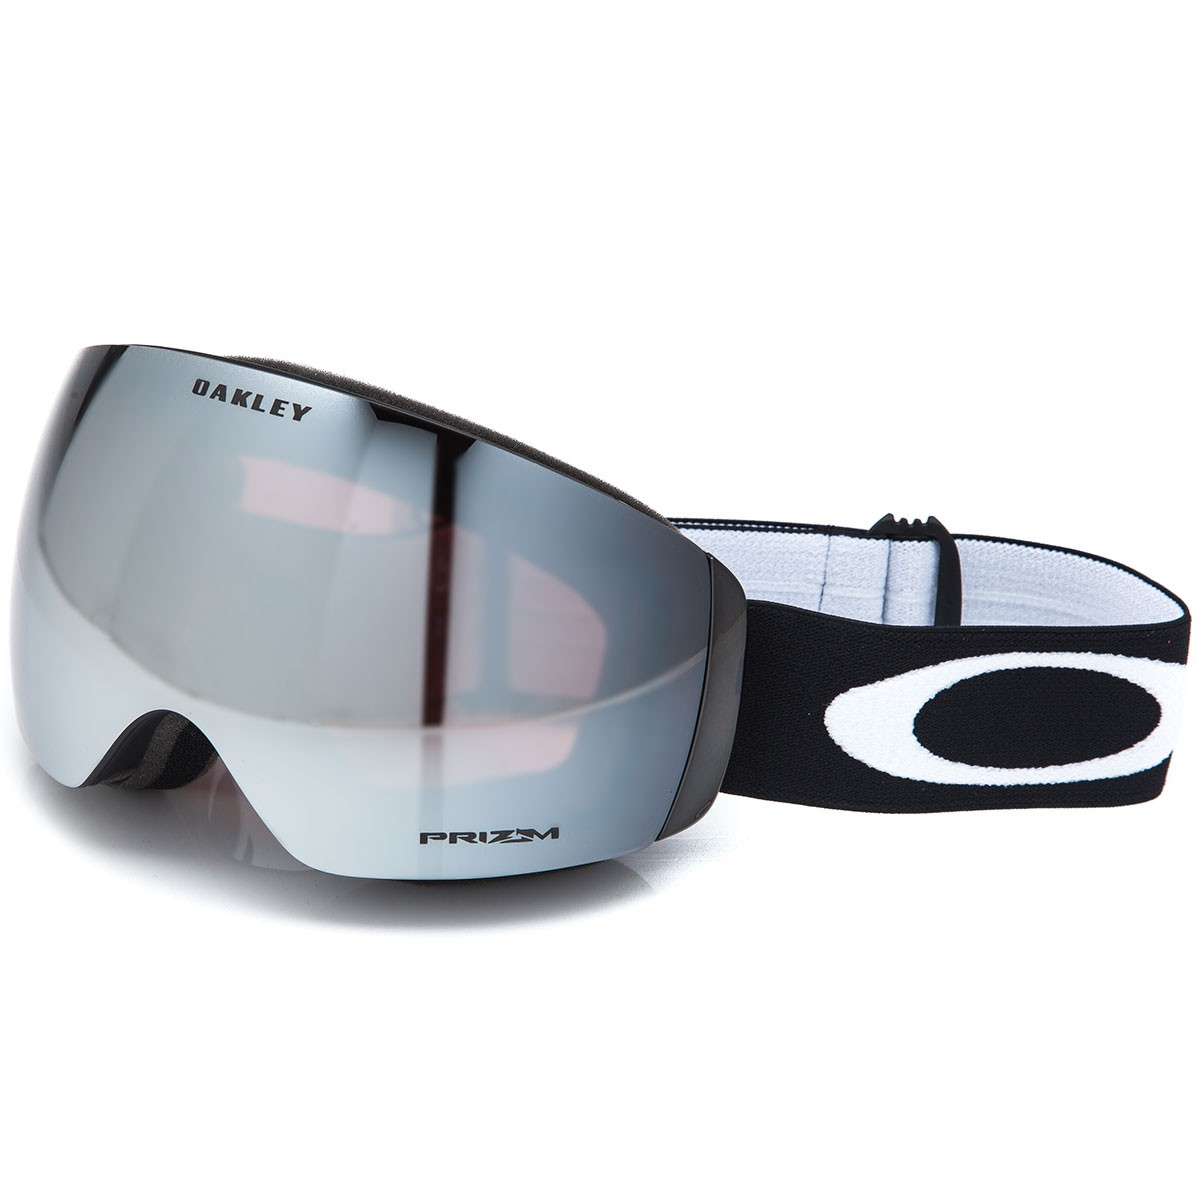 oakley flight deck snow goggles 62dk  Oakley Flight Deck XM Snowboard Goggles